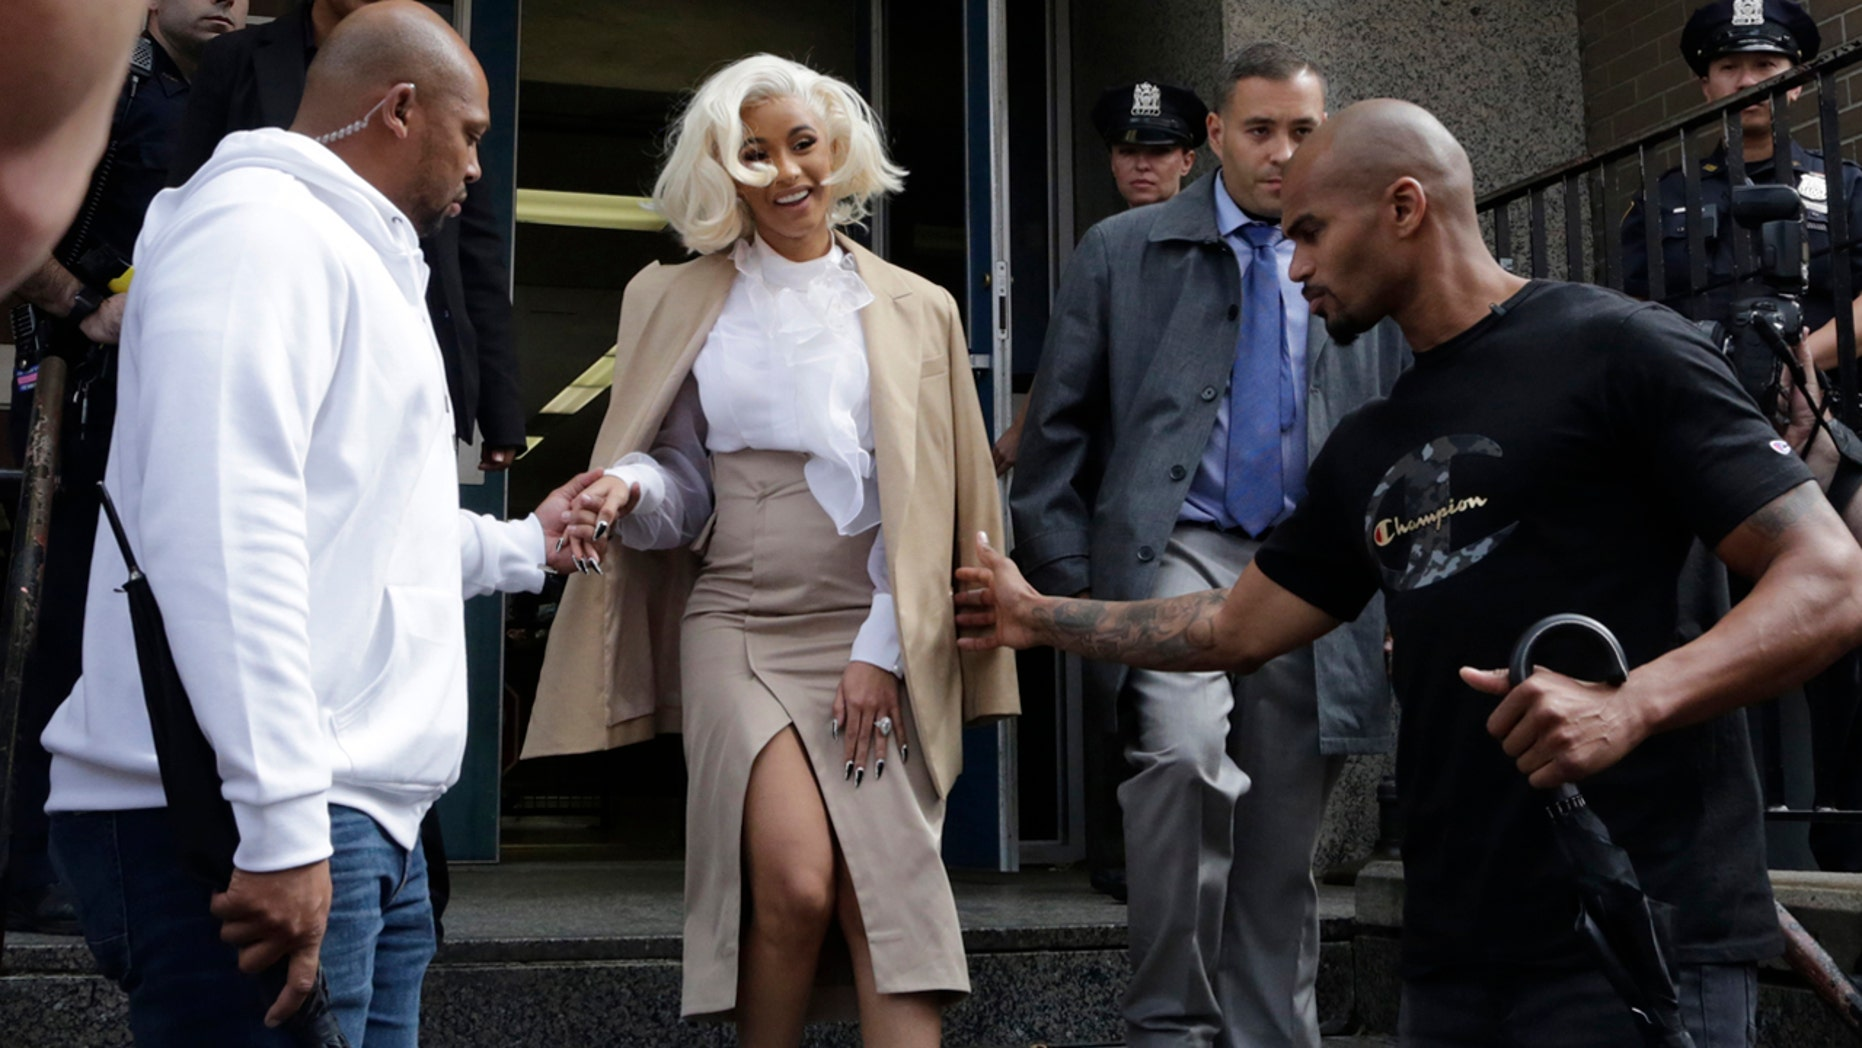 Cardi B gets summons but didn't hurt anyone: lawyer